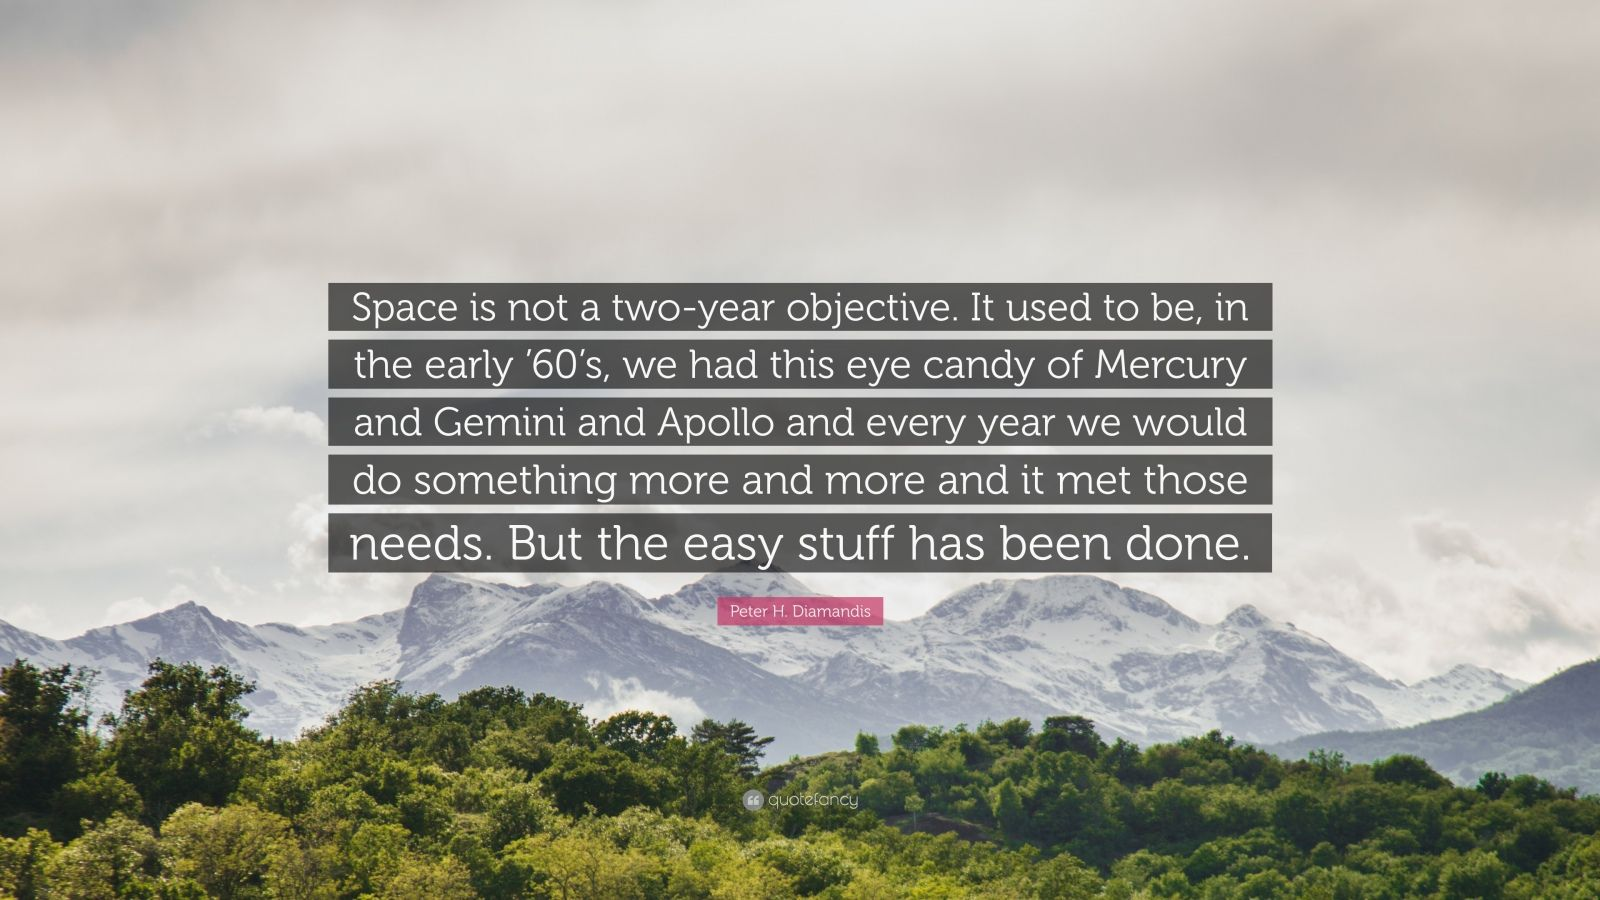 "Peter H. Diamandis Quote: ""Space is not a two-year objective. It used to be, in the early '60's, we had this eye candy of Mercury and Gemini and Apollo and every year we would do something more and more and it met those needs. But the easy stuff has been done."""